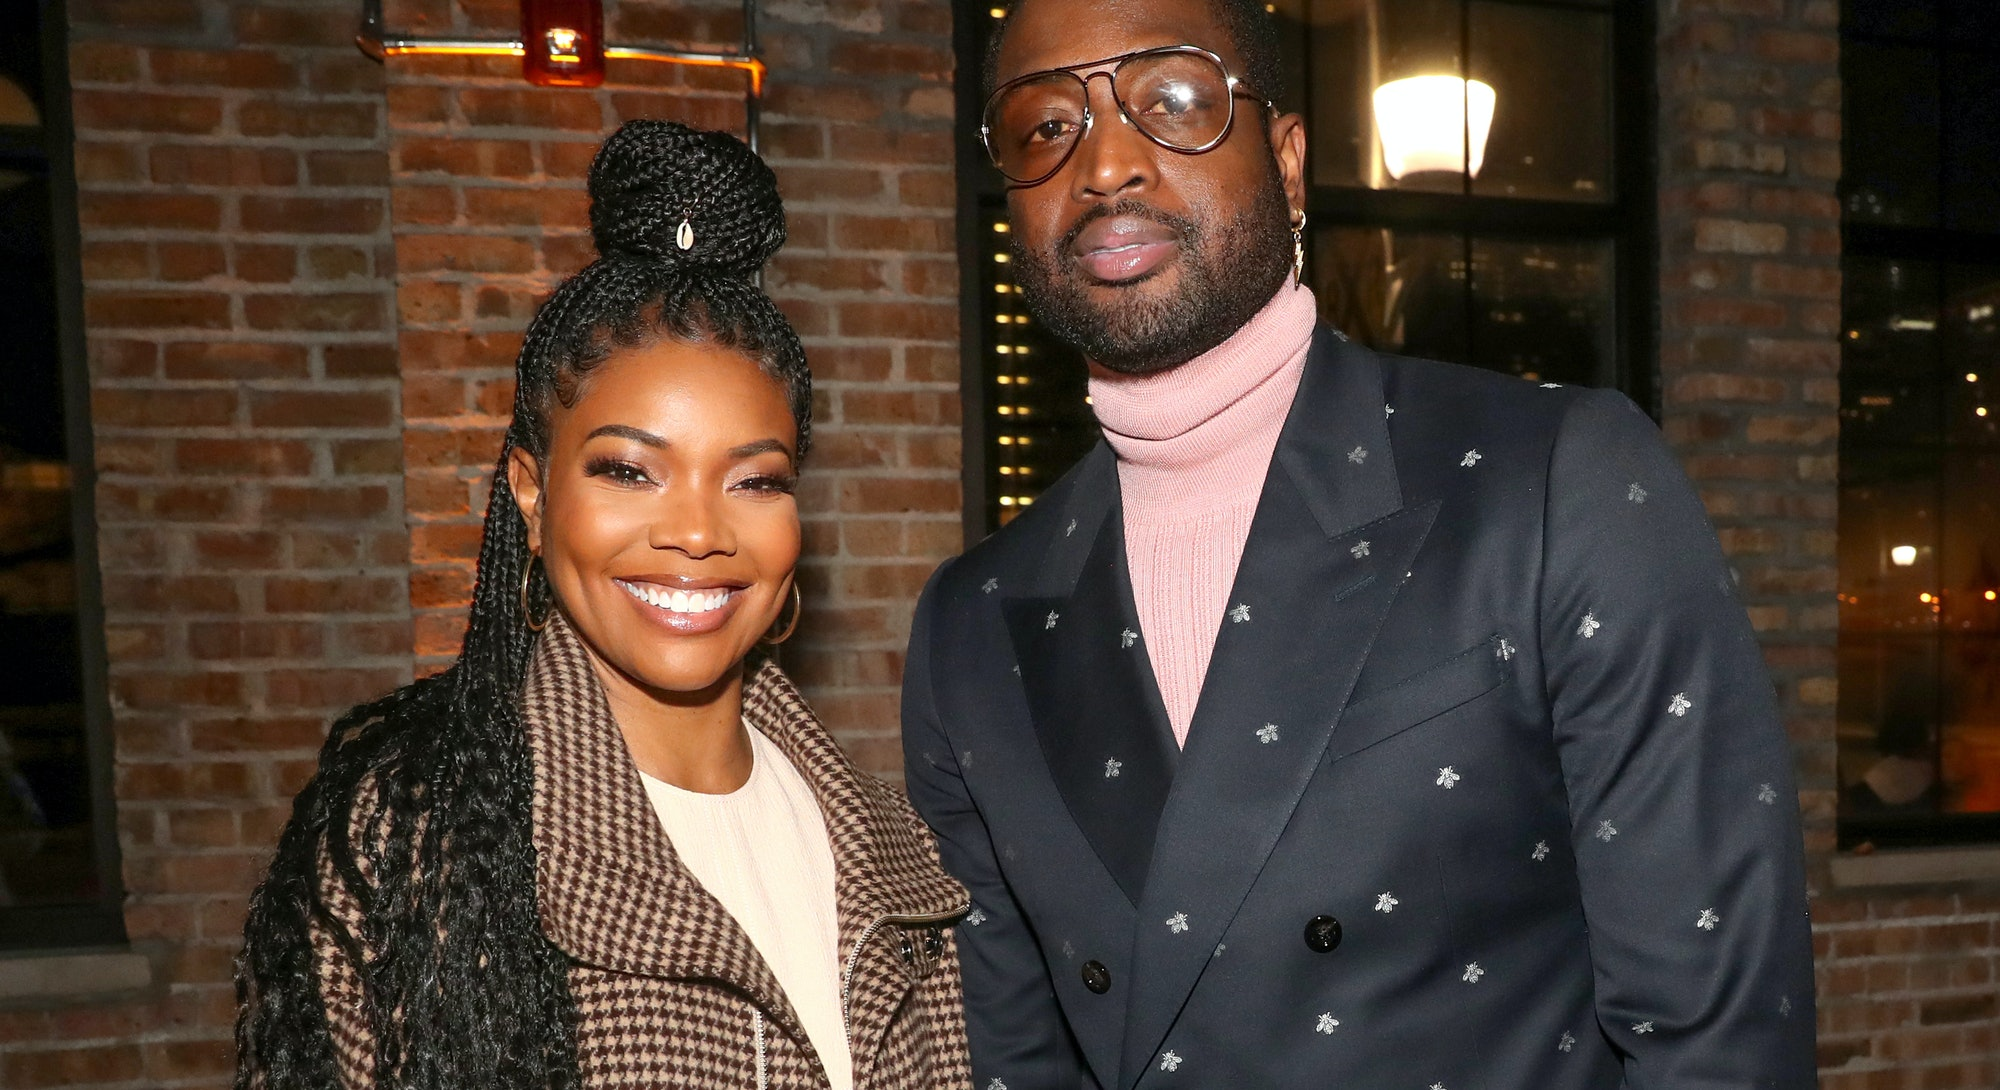 CHICAGO, ILLINOIS - FEBRUARY 15: Gabrielle Union and Dwyane Wade attend Stance Spades At NBA All-Sta...